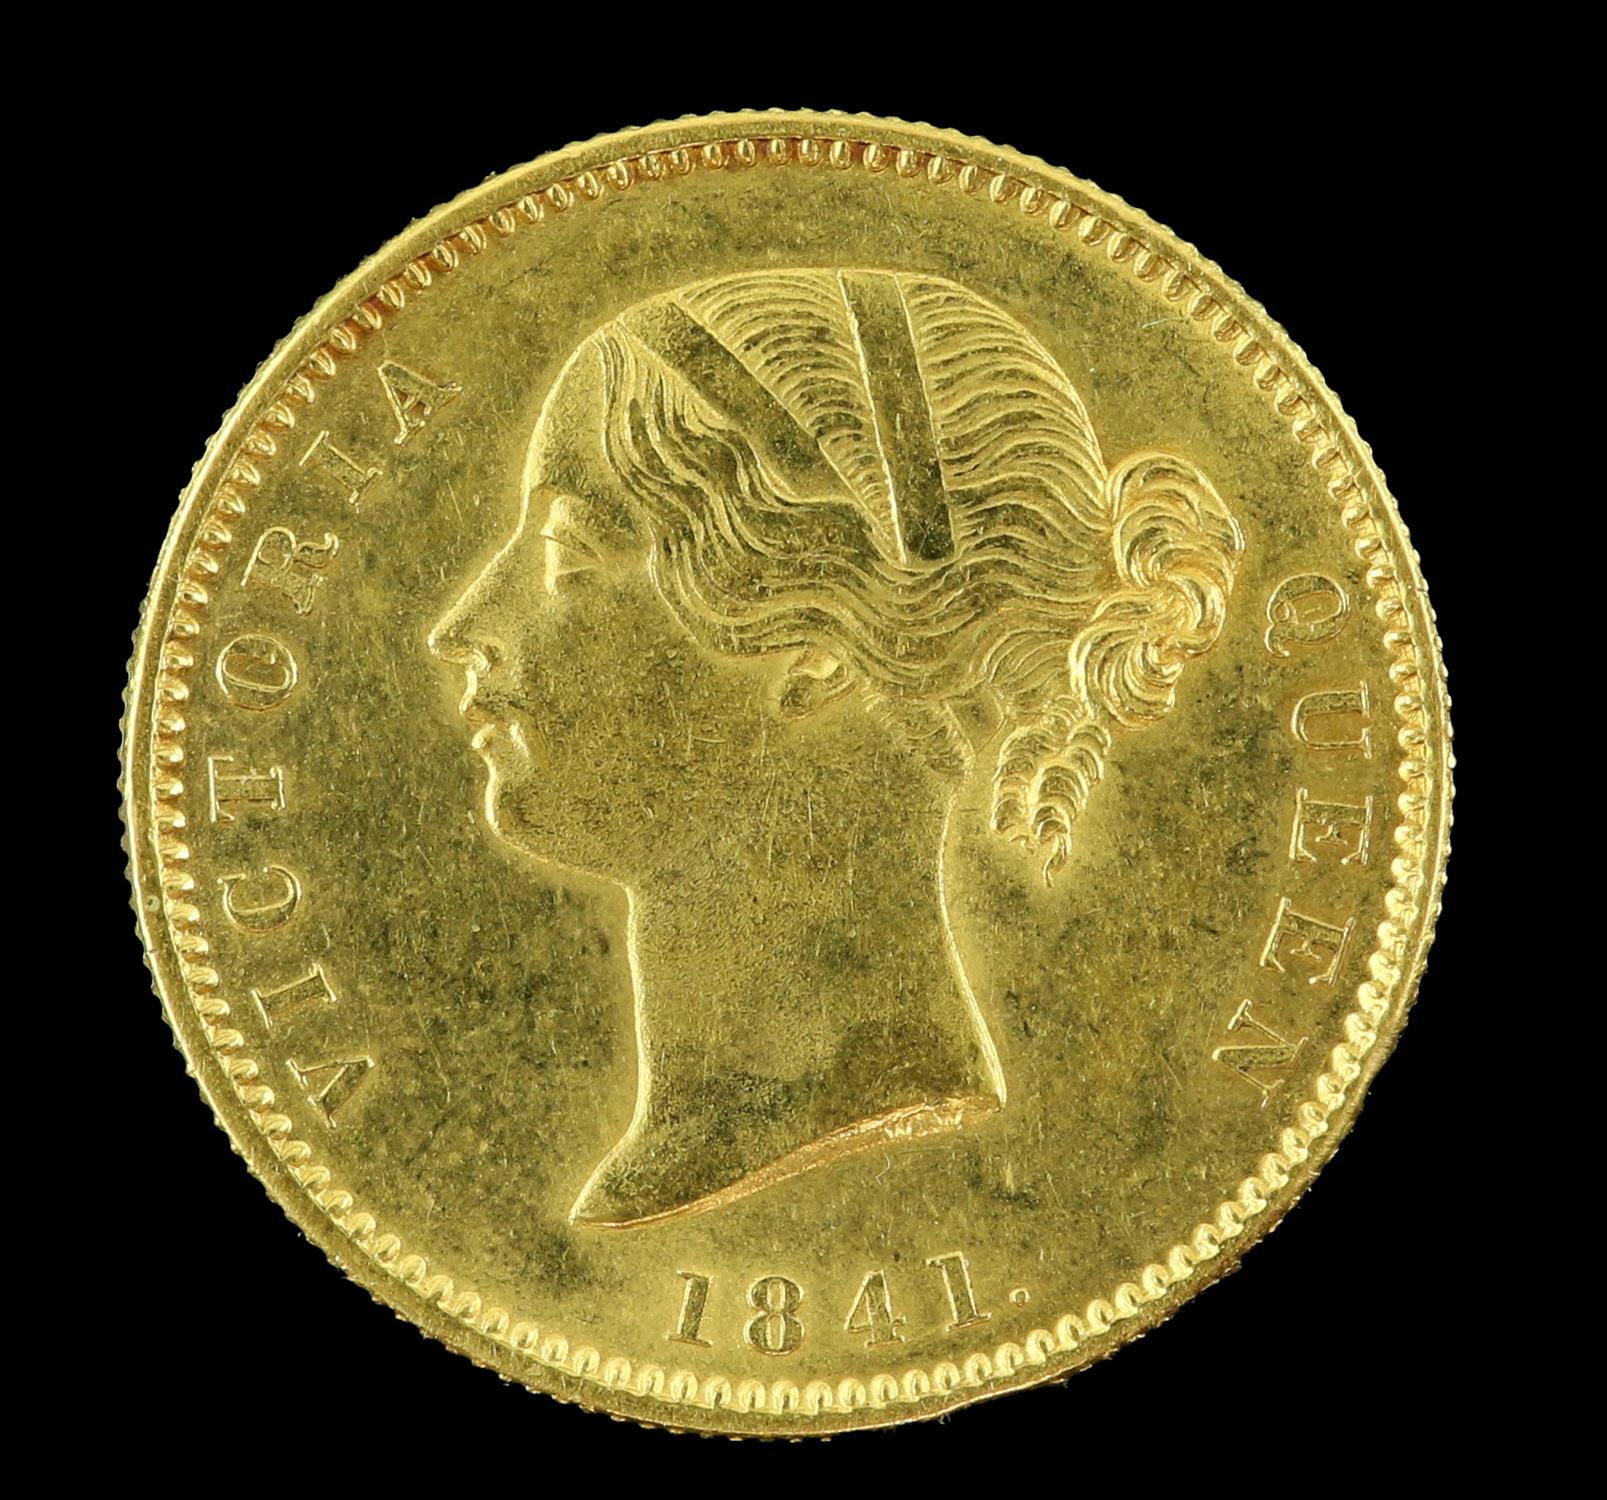 East India Company gold Mohur 1841 - Image 2 of 2